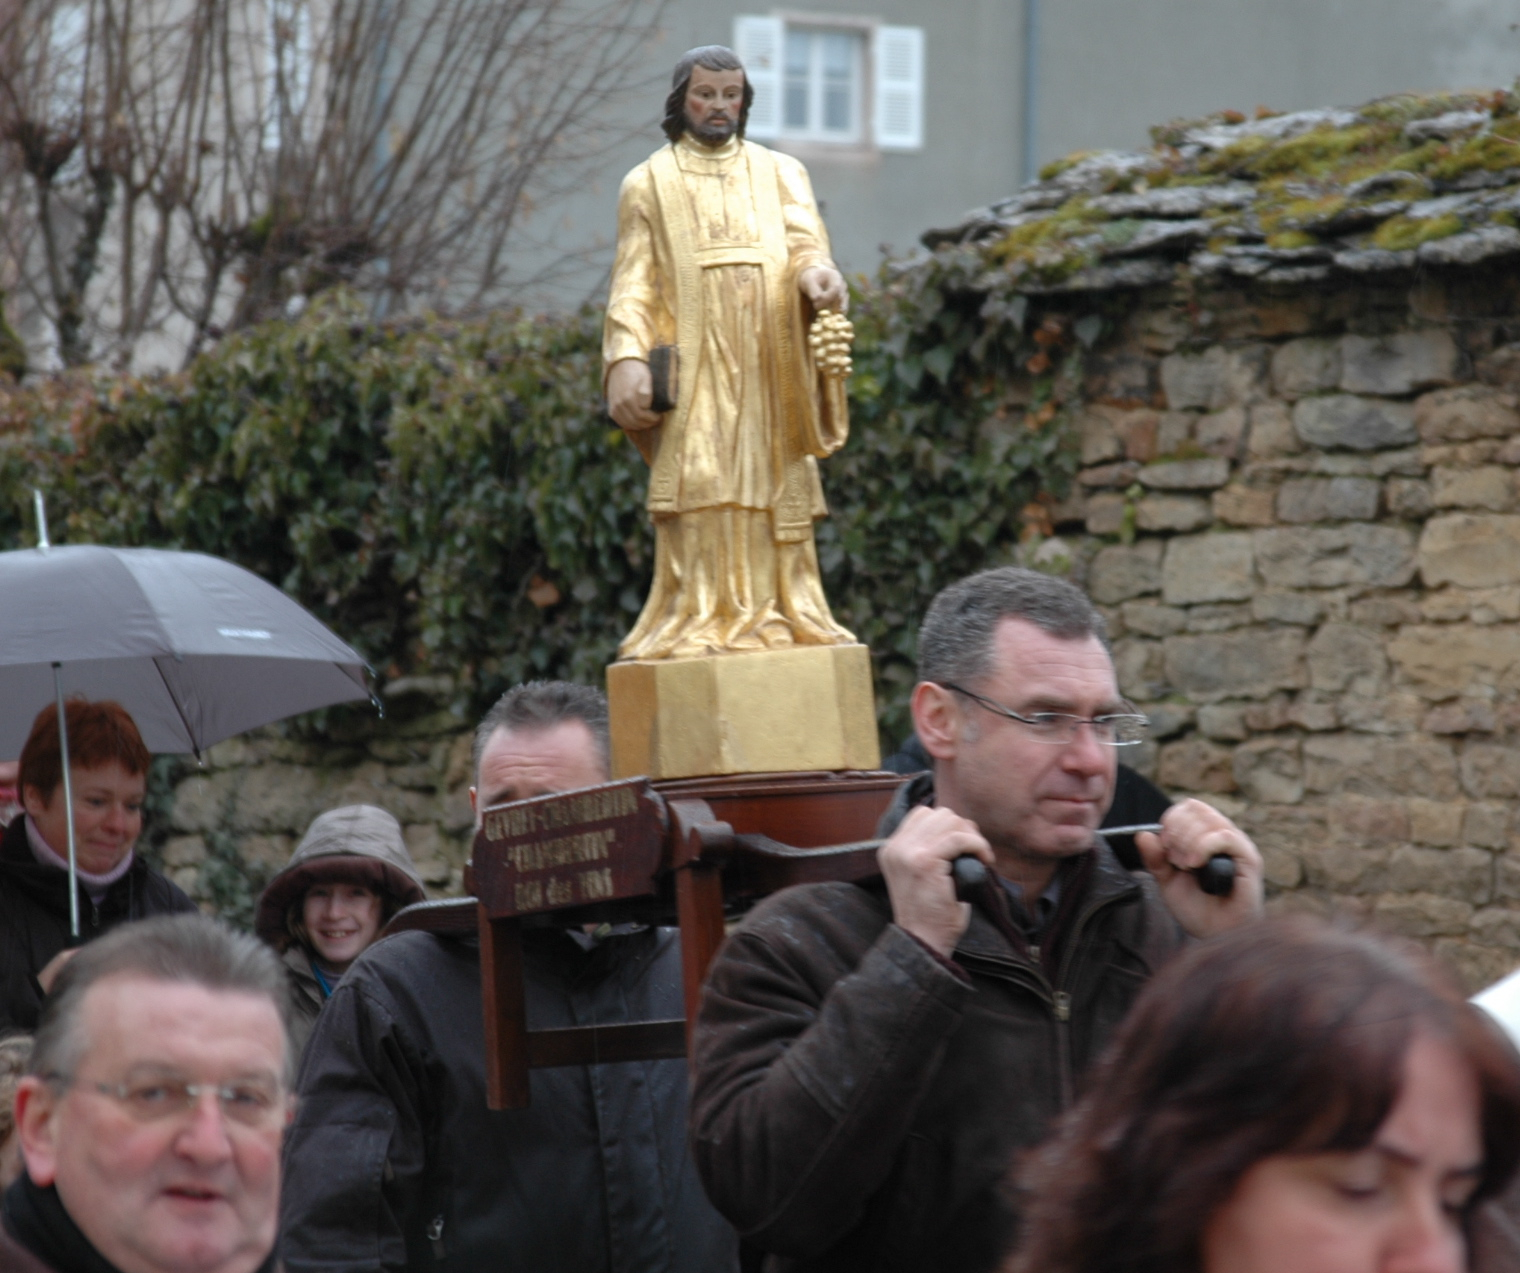 The procession of St Vincent in Gevrey Chambertin, Burgundy